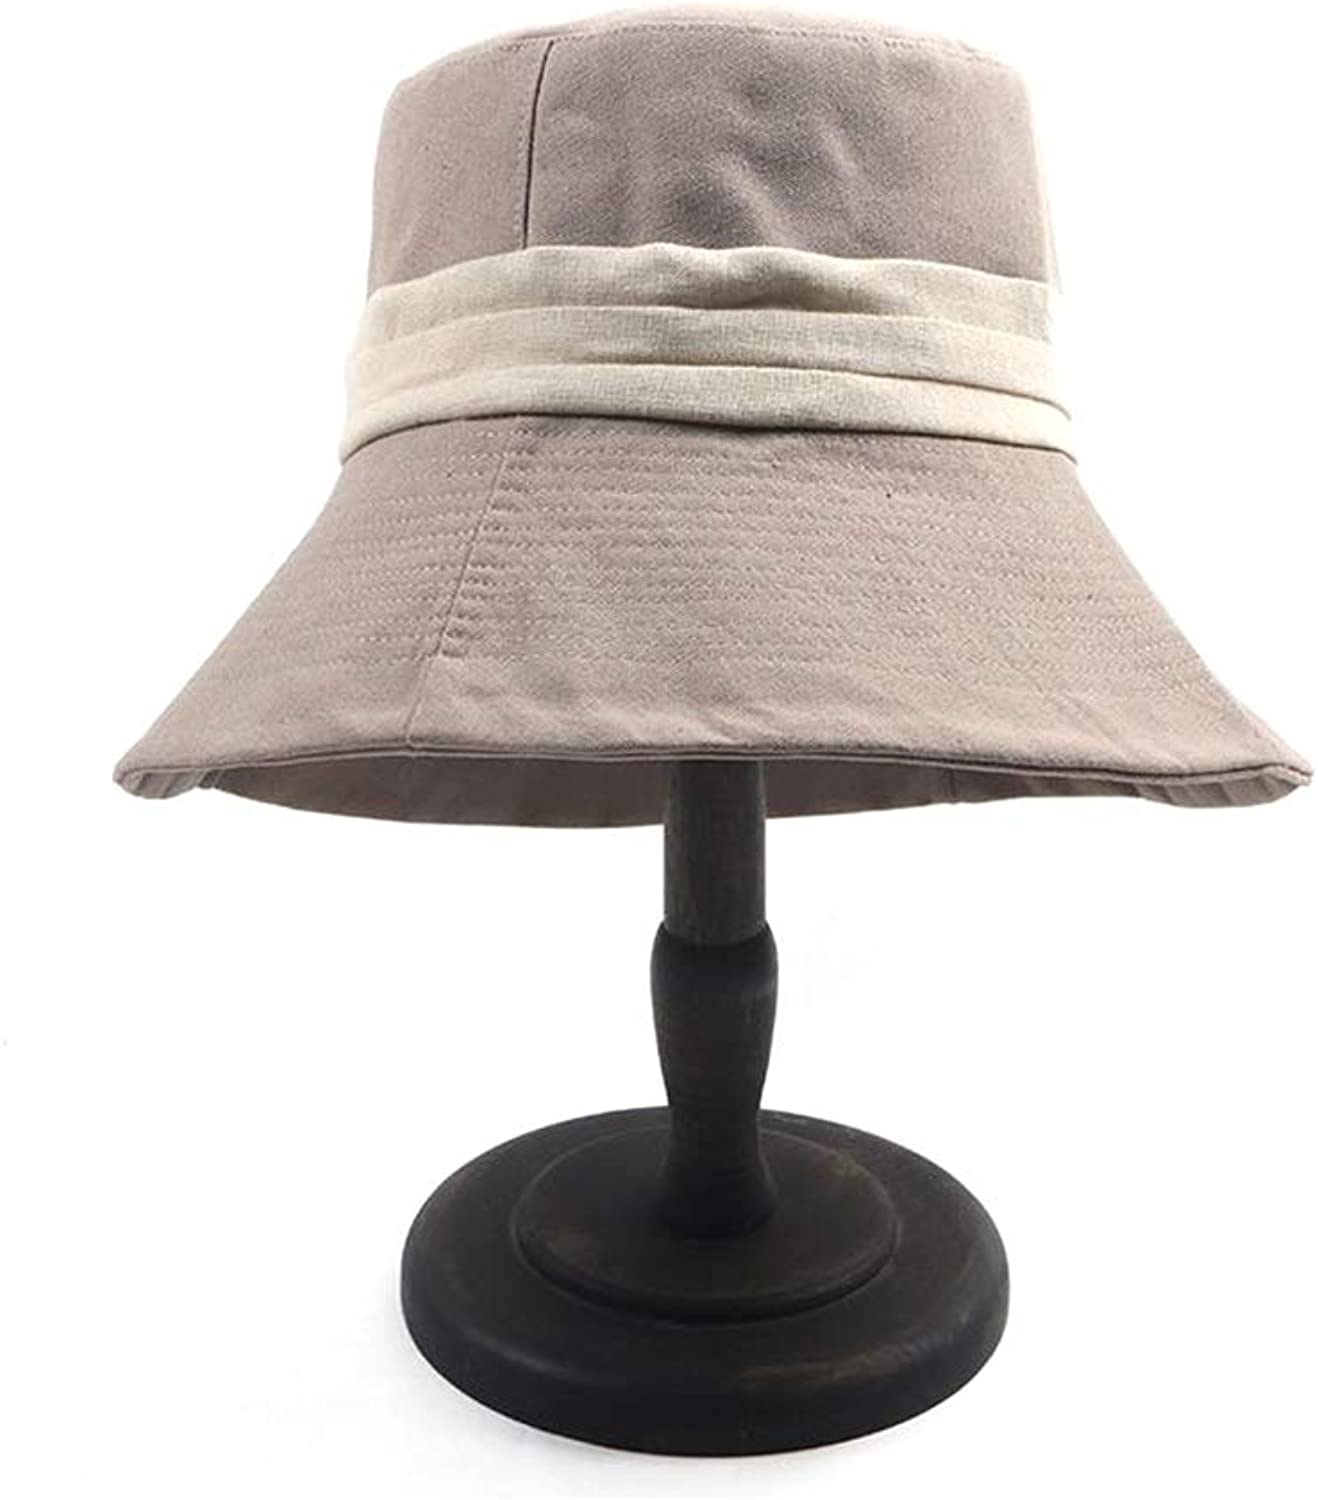 Teng Peng Sun hatins2019 New Listing Fisherman hat Foldable Ladies Outdoor Beach Sunscreen Summer hat Wide Side Breathable hat Beach Sun hat Lady Outdoor Sun hat (color   Khaki)